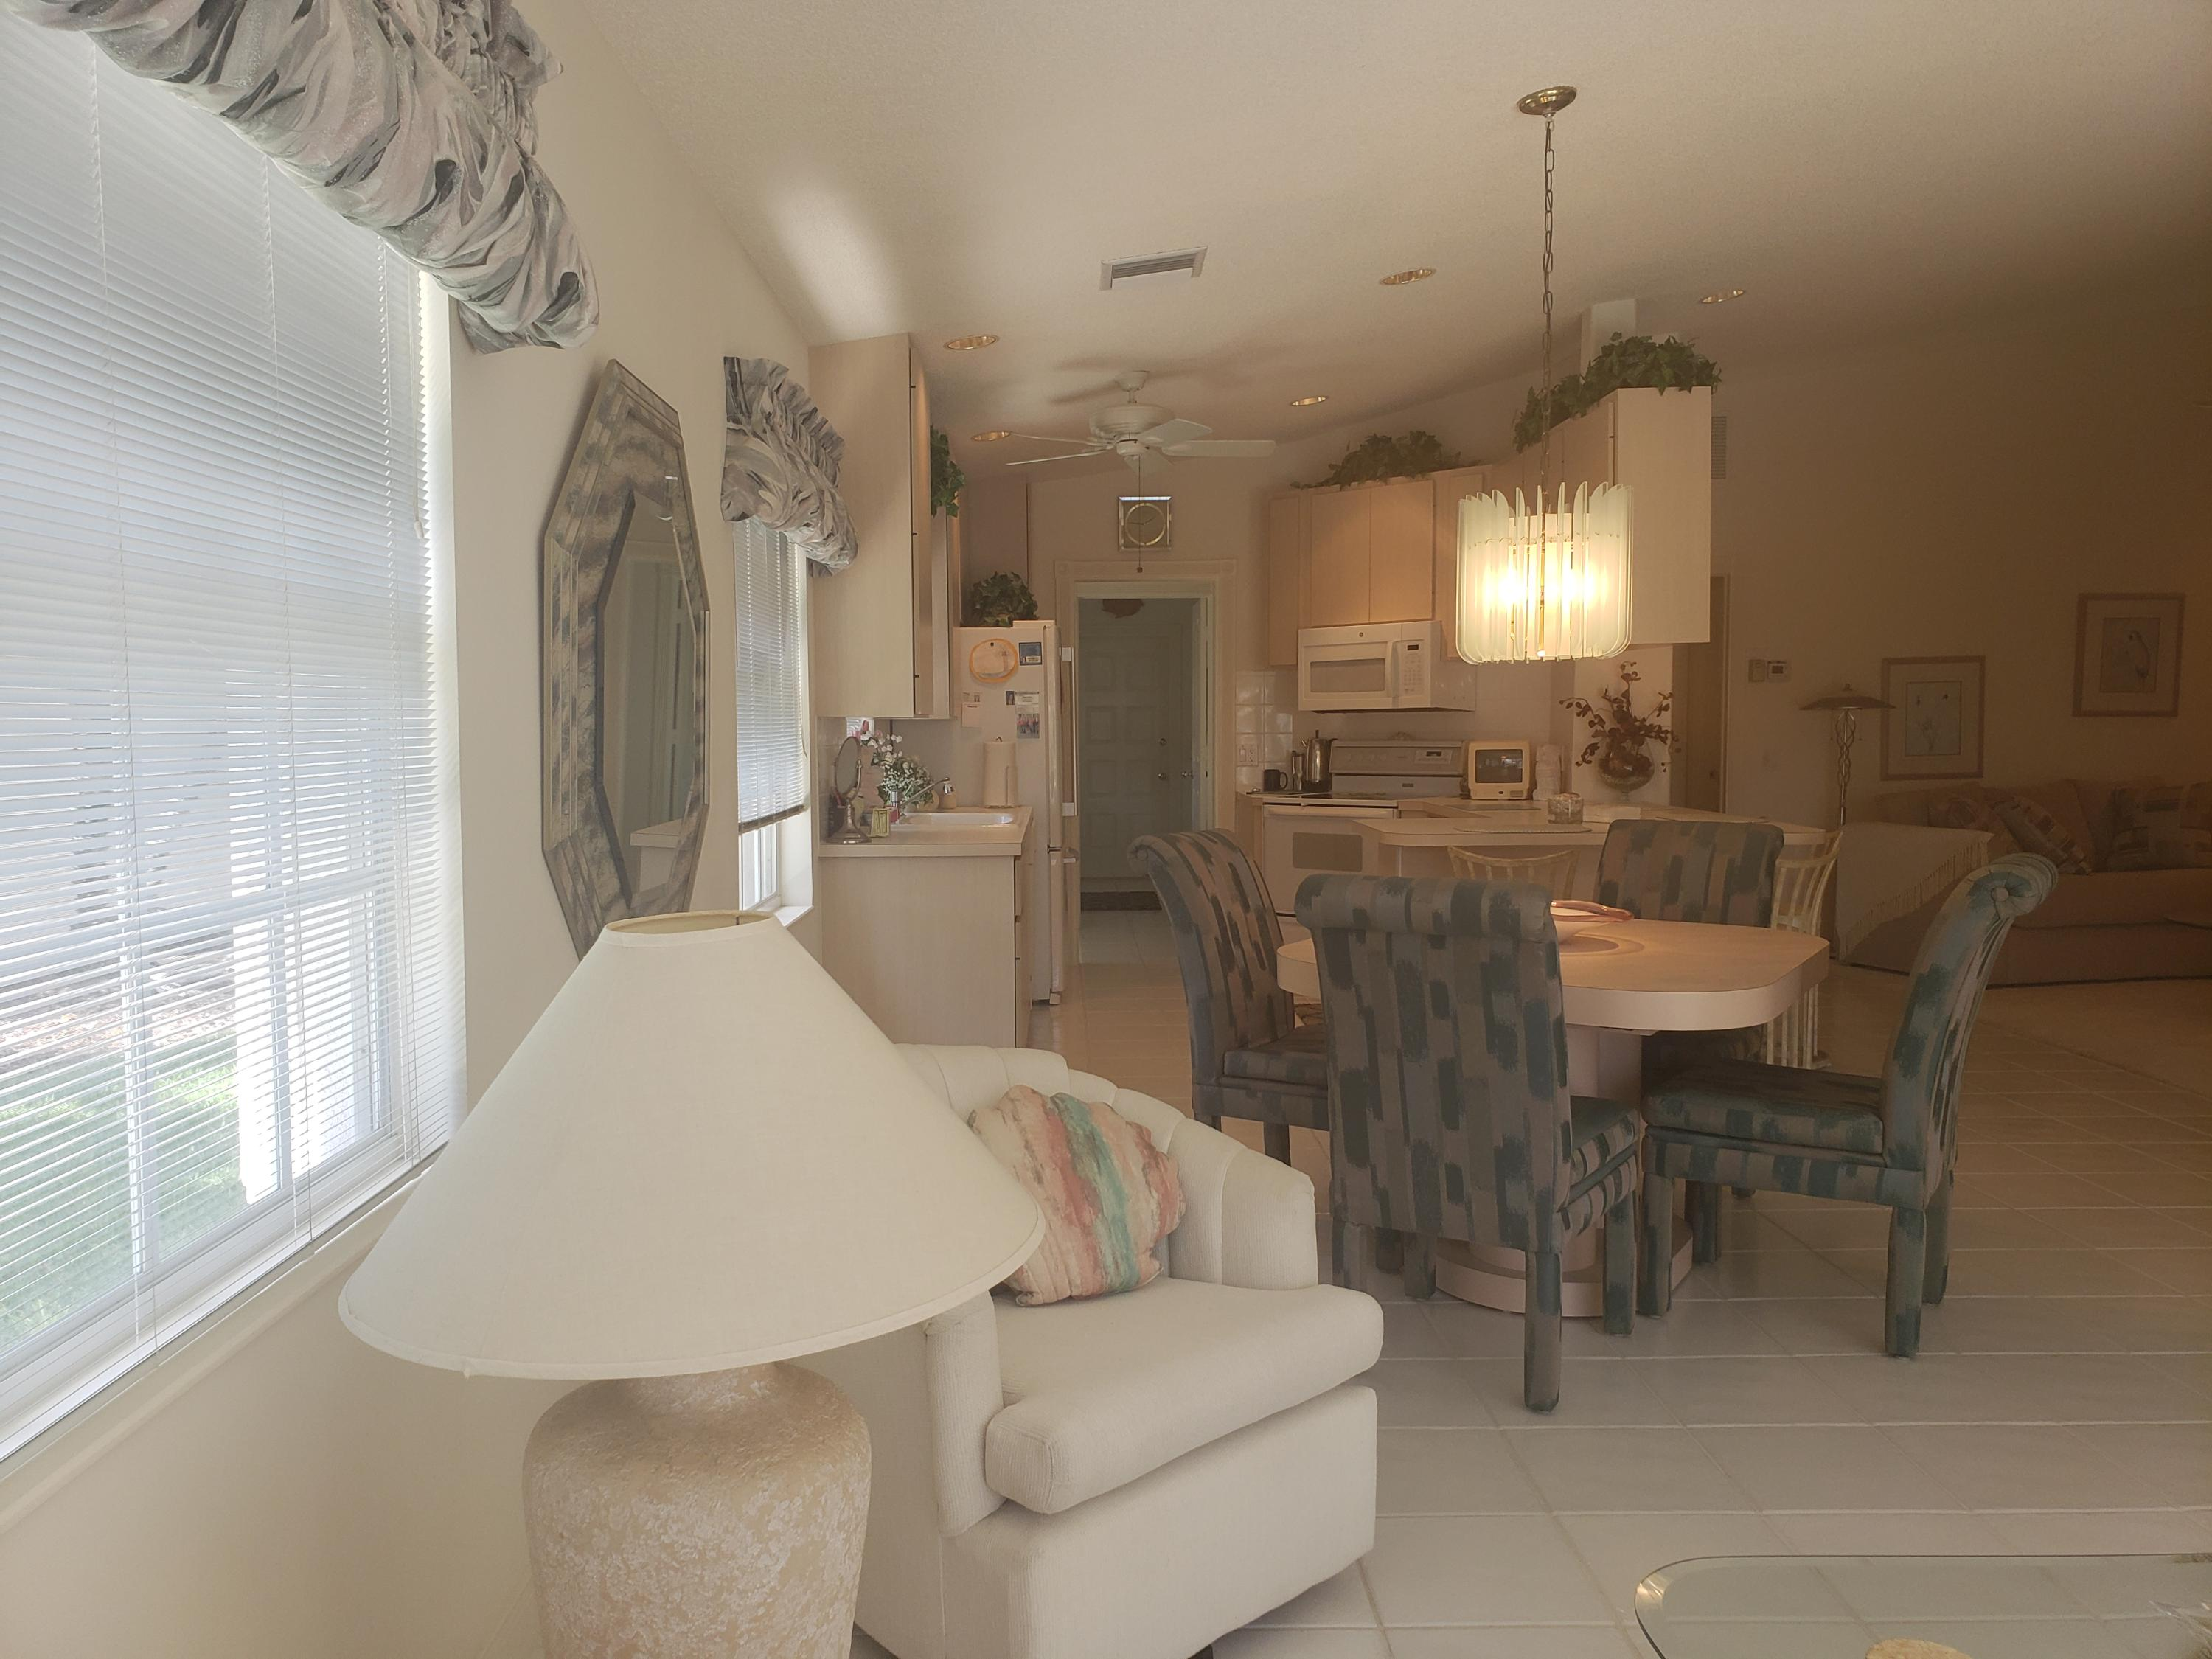 LAKES AT ST LUCIE WEST PLAT NO 54 HOMES